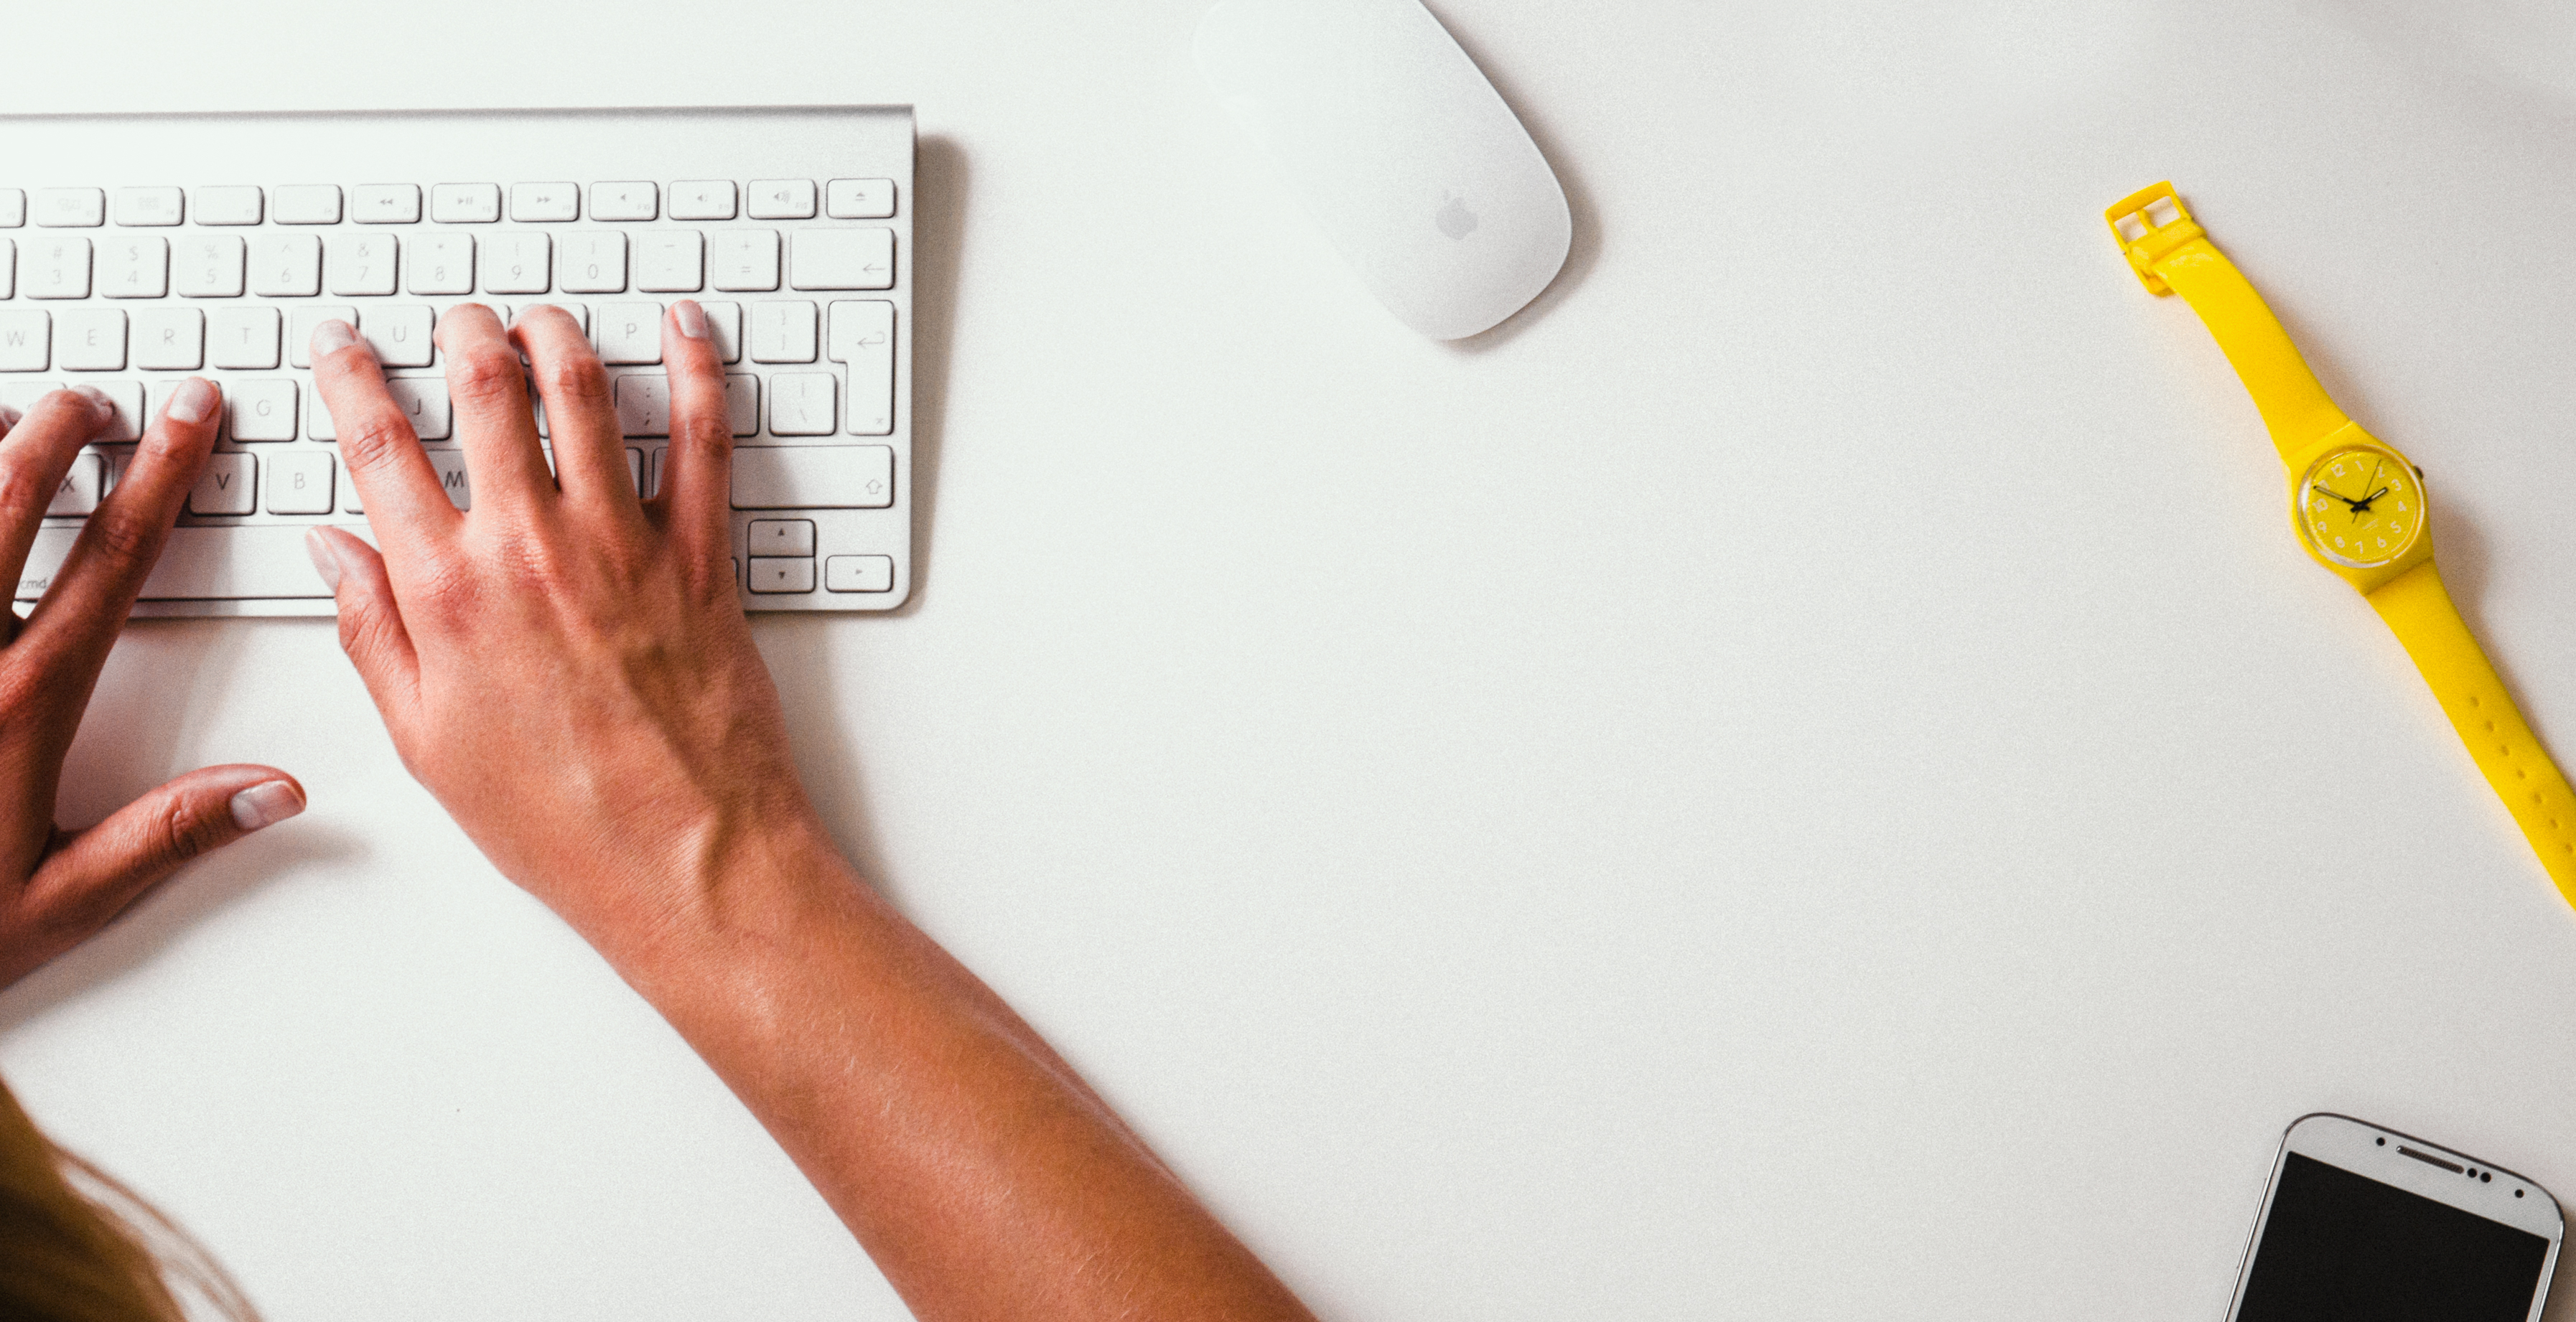 Photograph of person typing on keyboard